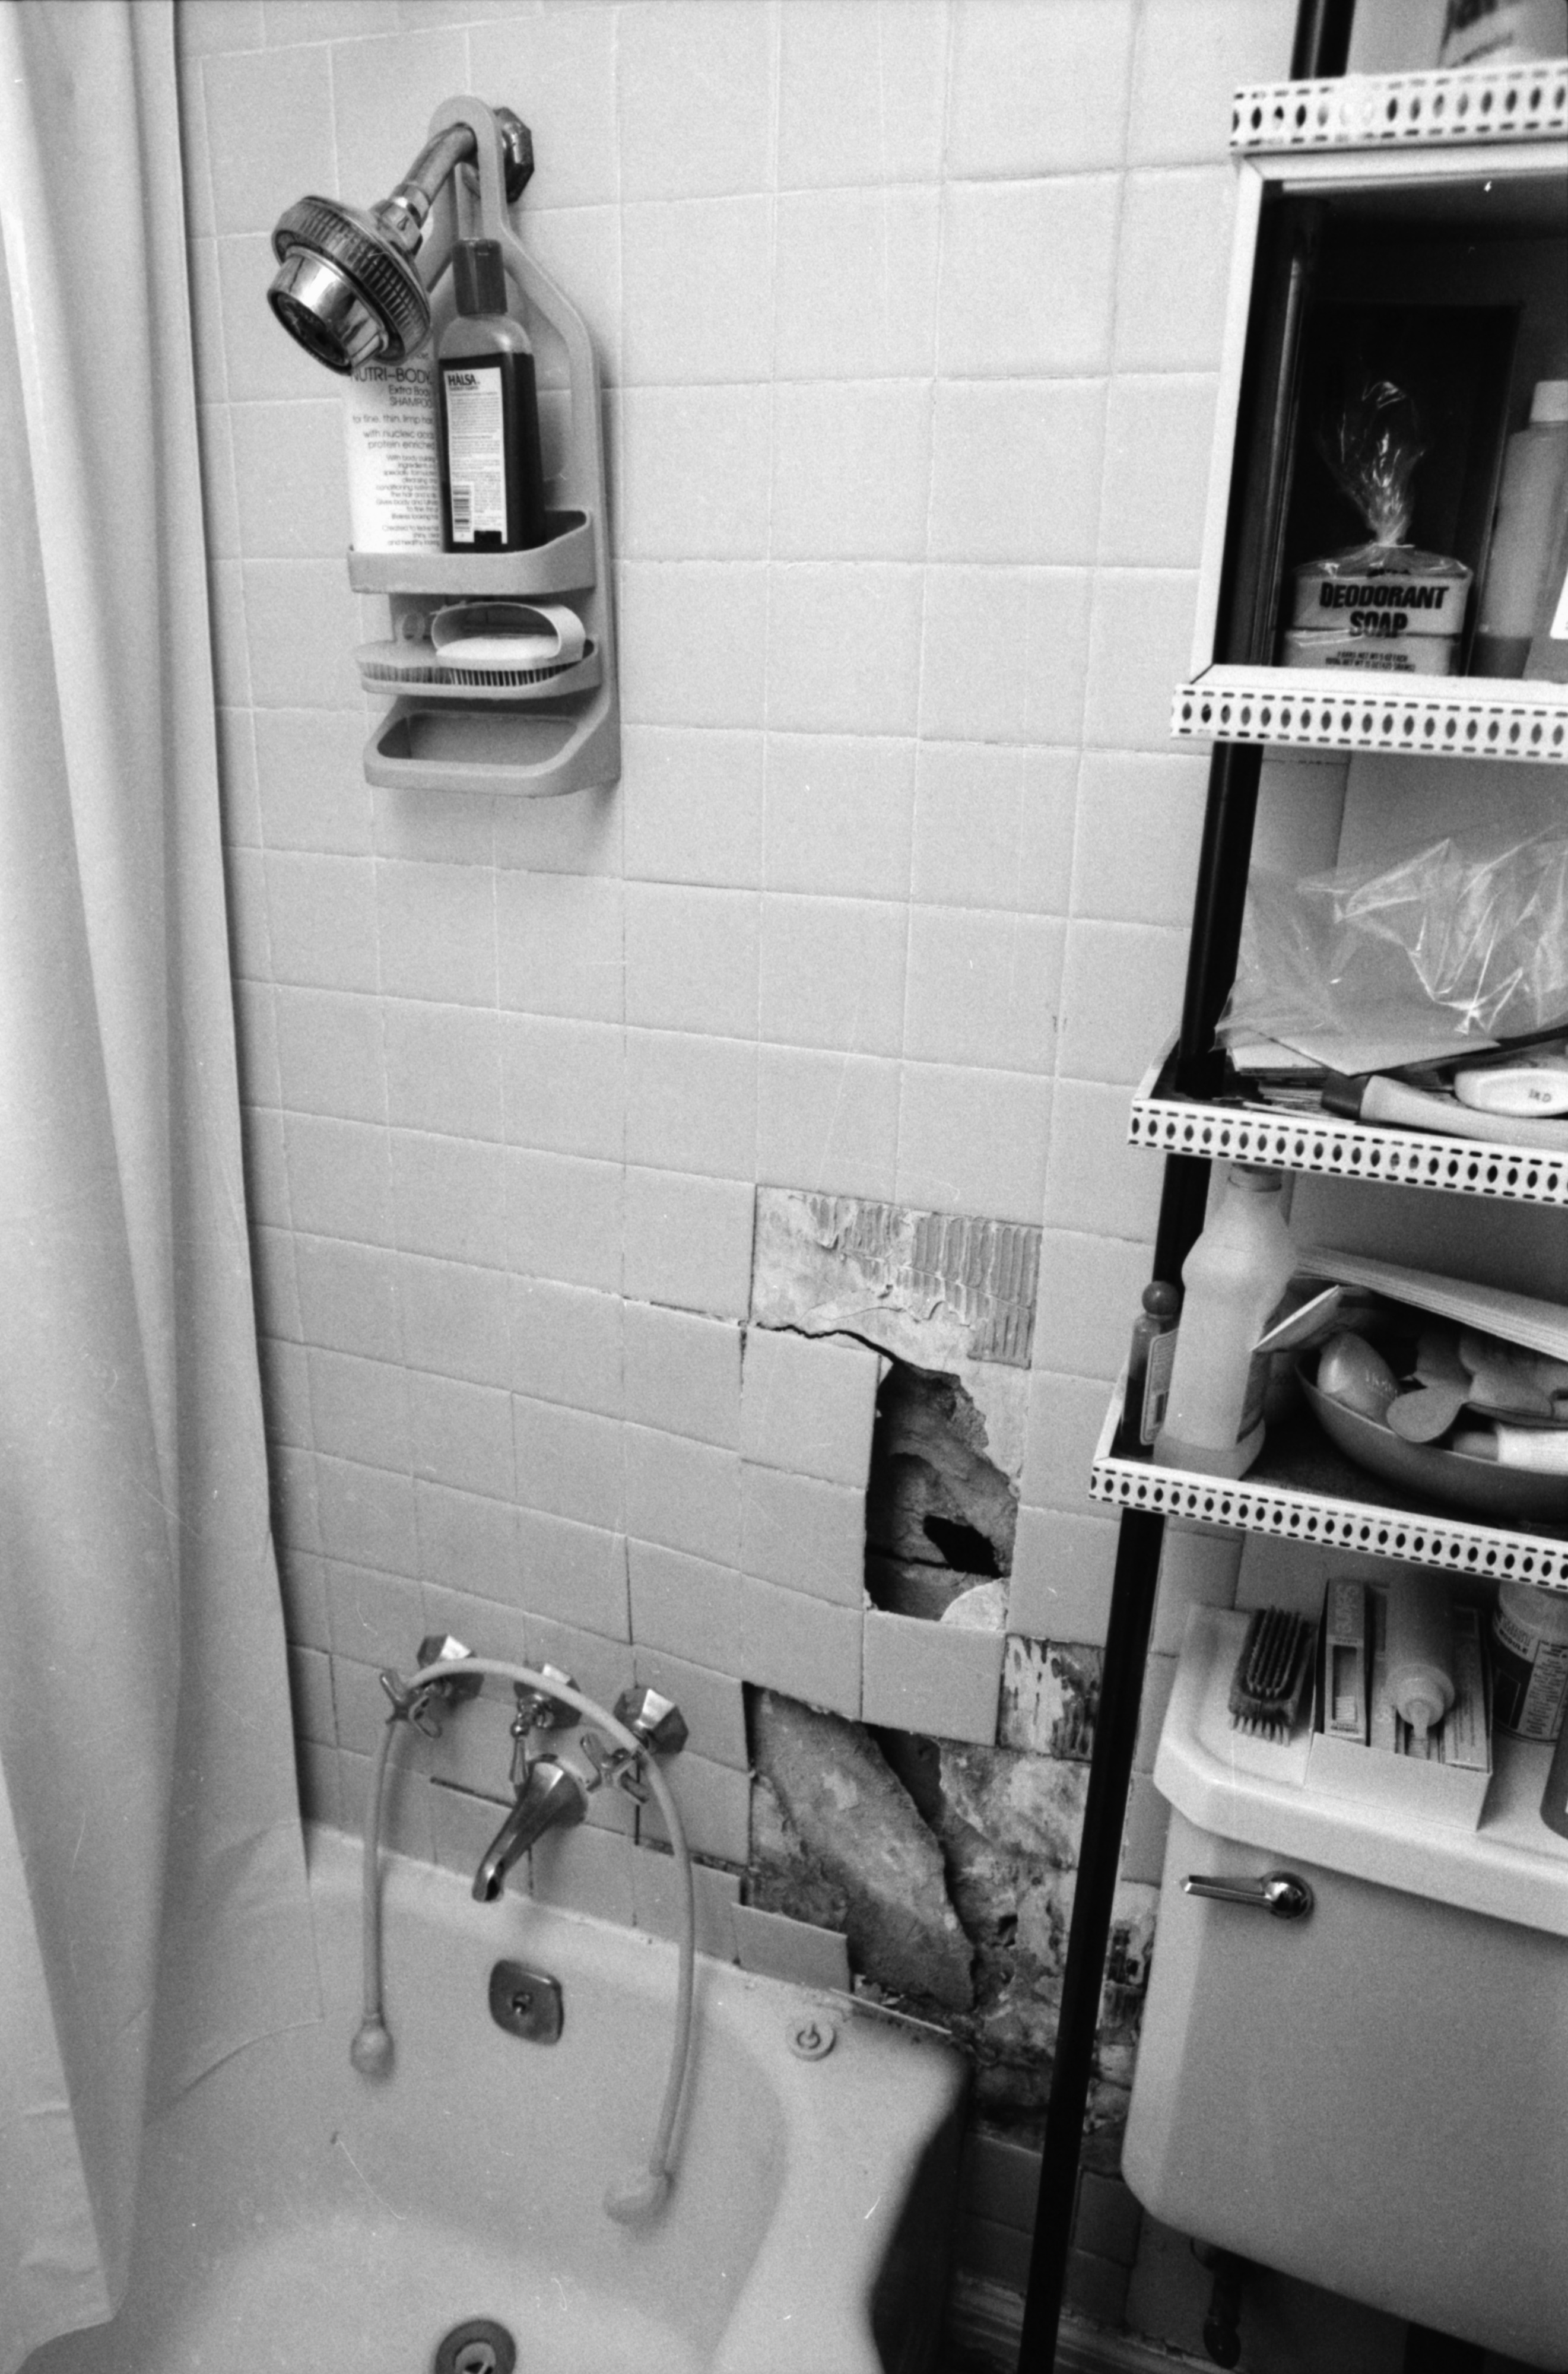 Interior View of Pittsfield Village Showing Damage to Shower, July 1986 image